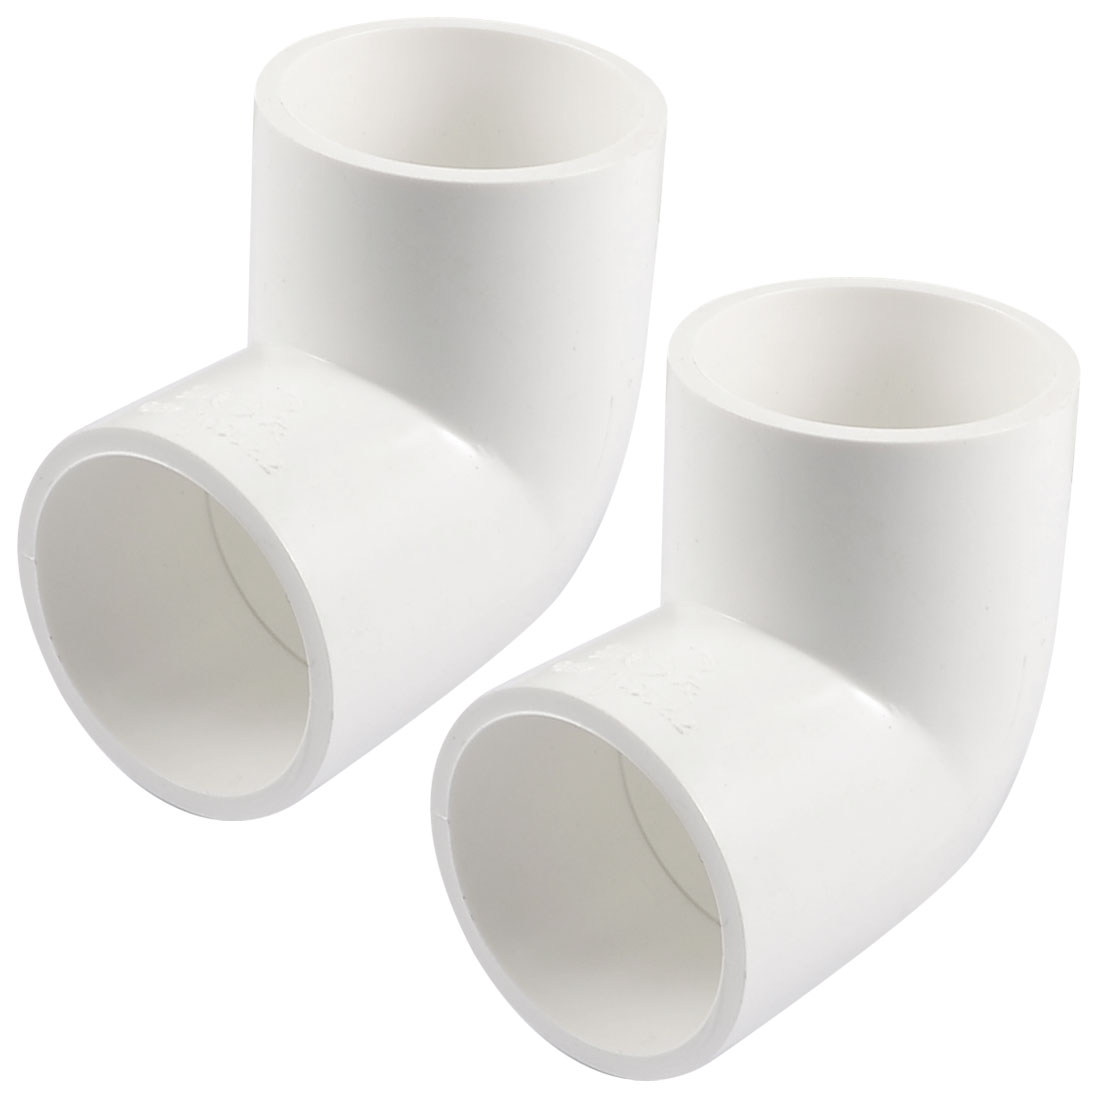 2-x-40mm-Dia-90-Angle-Degree-Elbow-PVC-Pipe-Fittings-Adapter-Connector-White